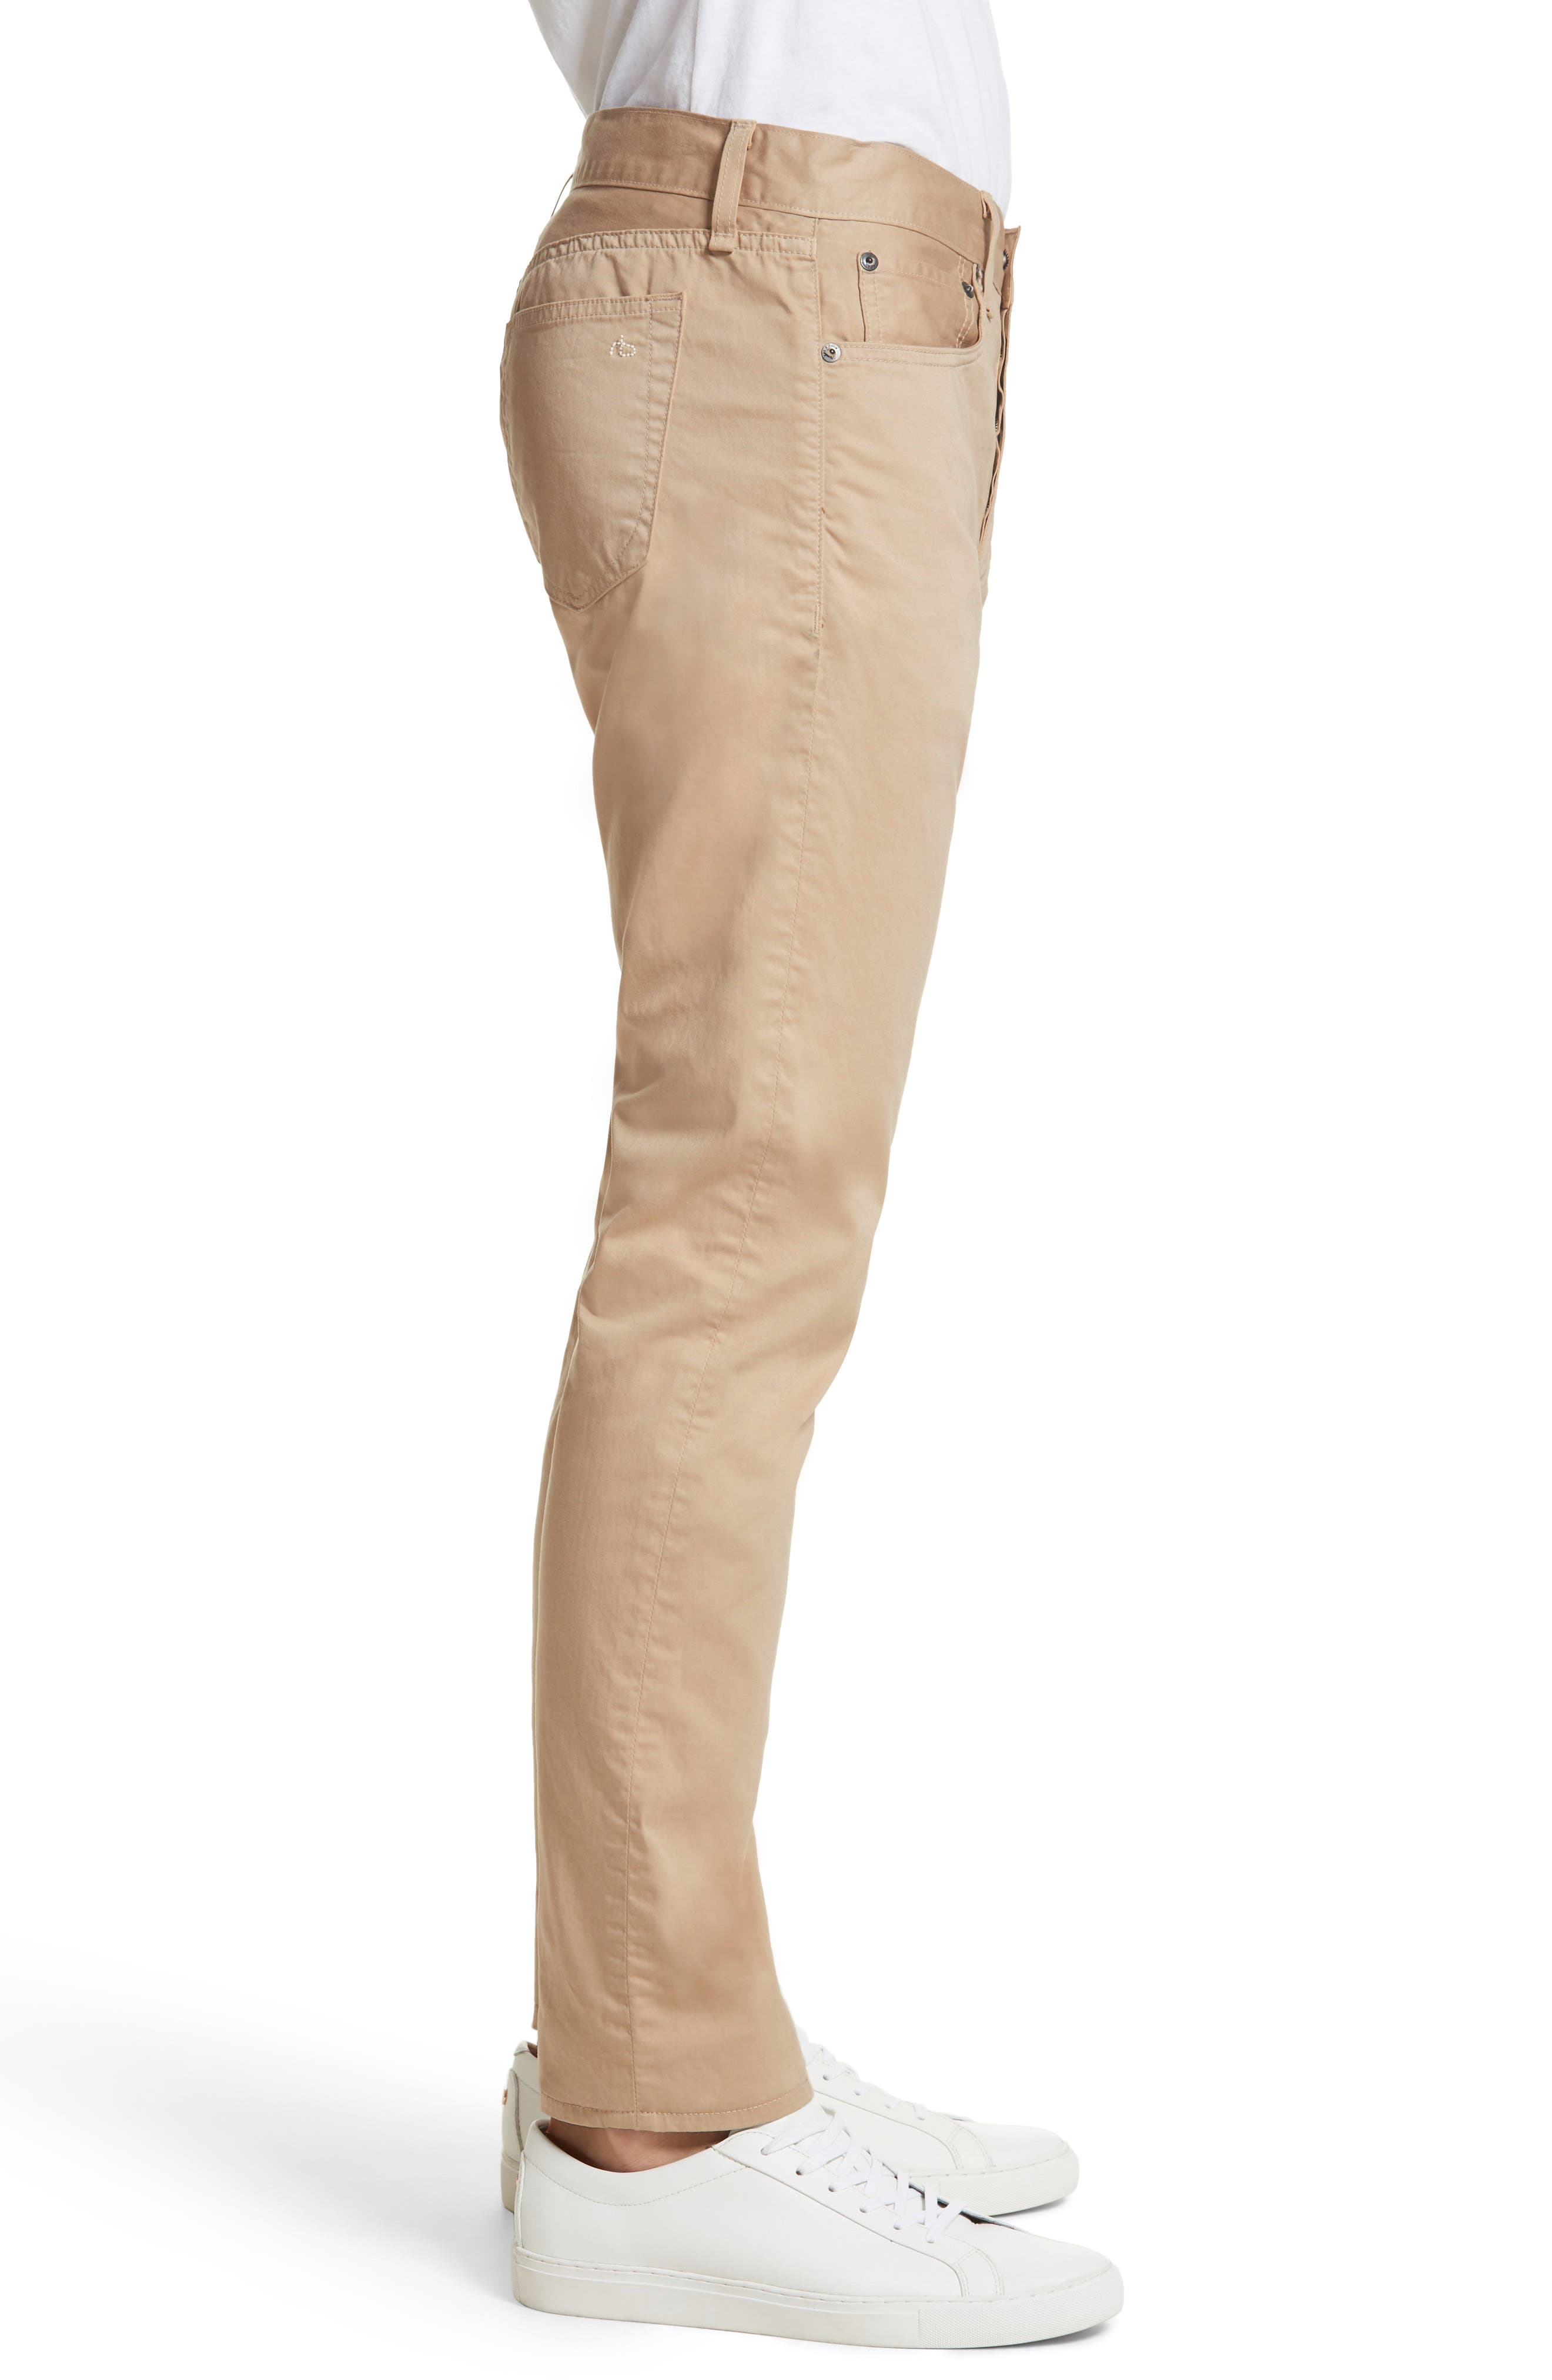 Fit 2 Five-Pocket Twill Pants,                             Alternate thumbnail 3, color,                             Beige